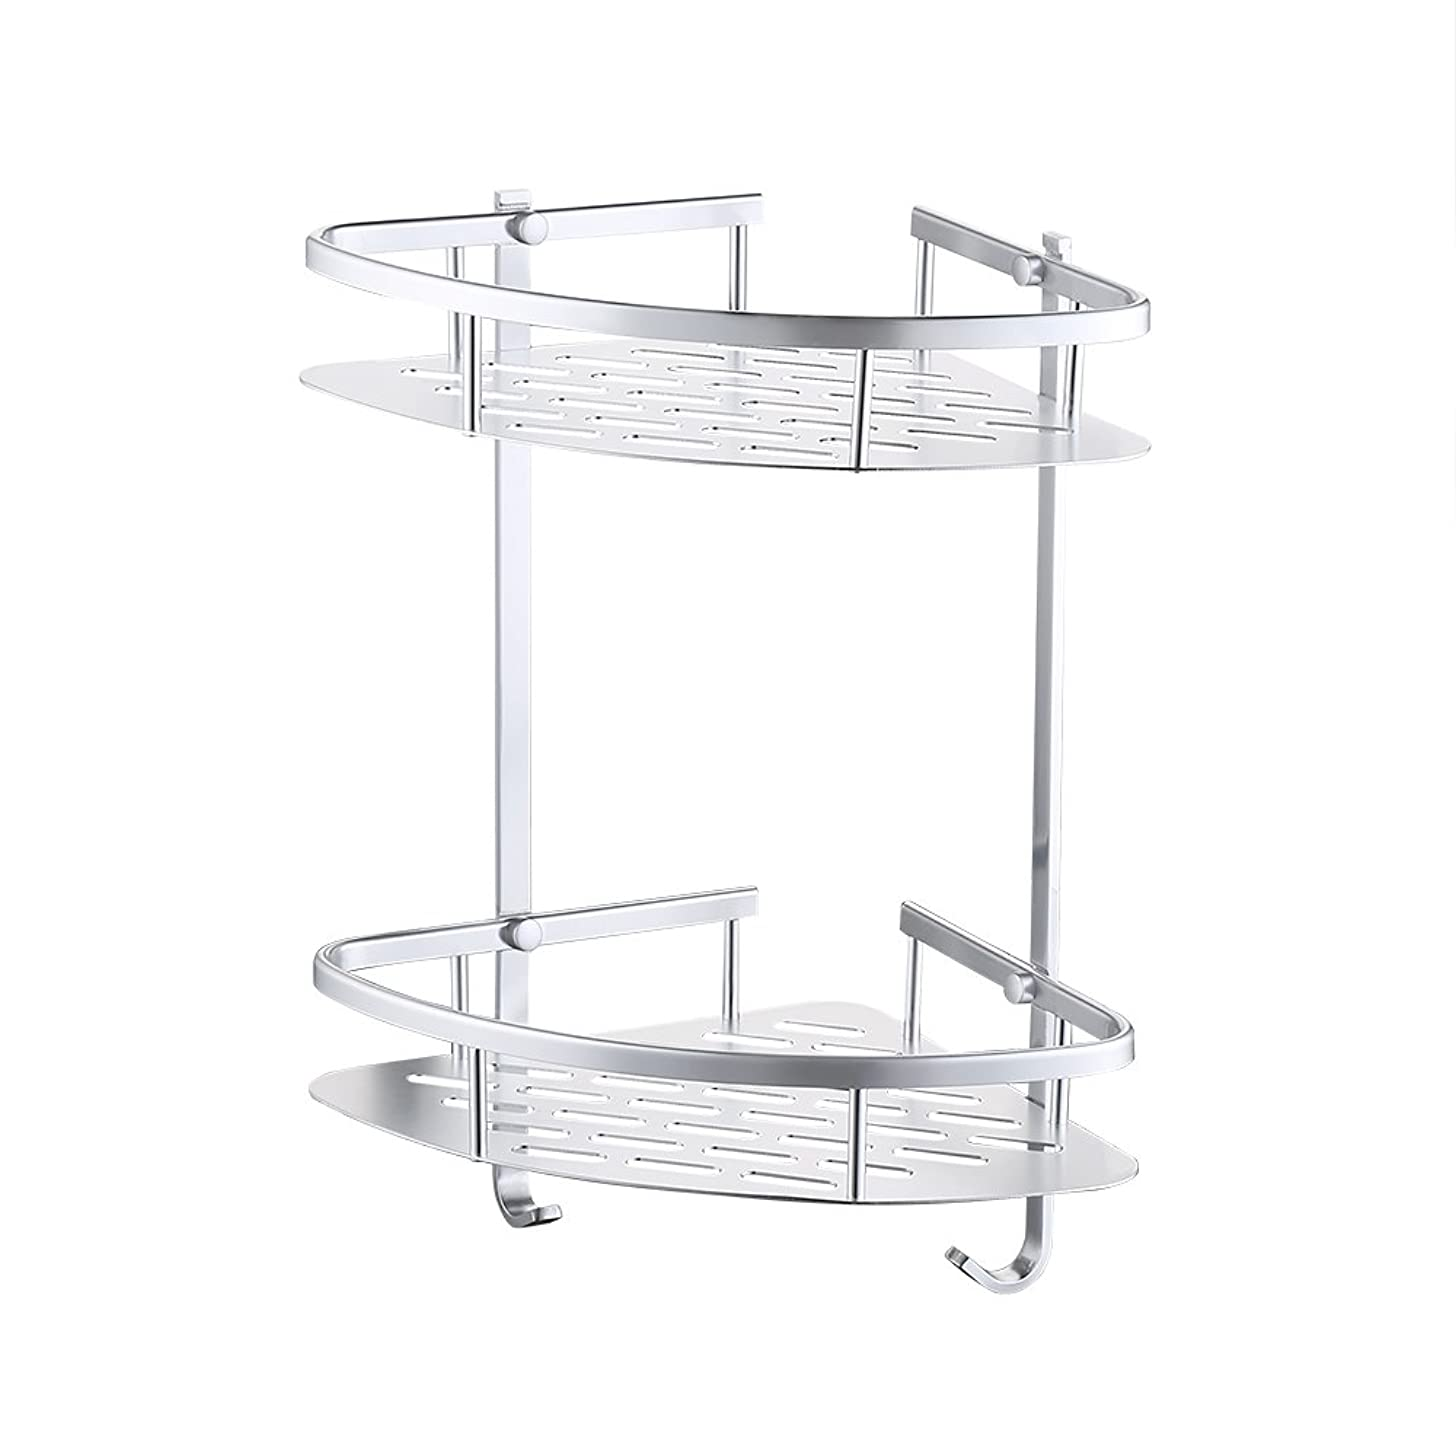 KES A4022B Tub and Shower Large Corner Basket Two Tier with Wall Mount Aluminum